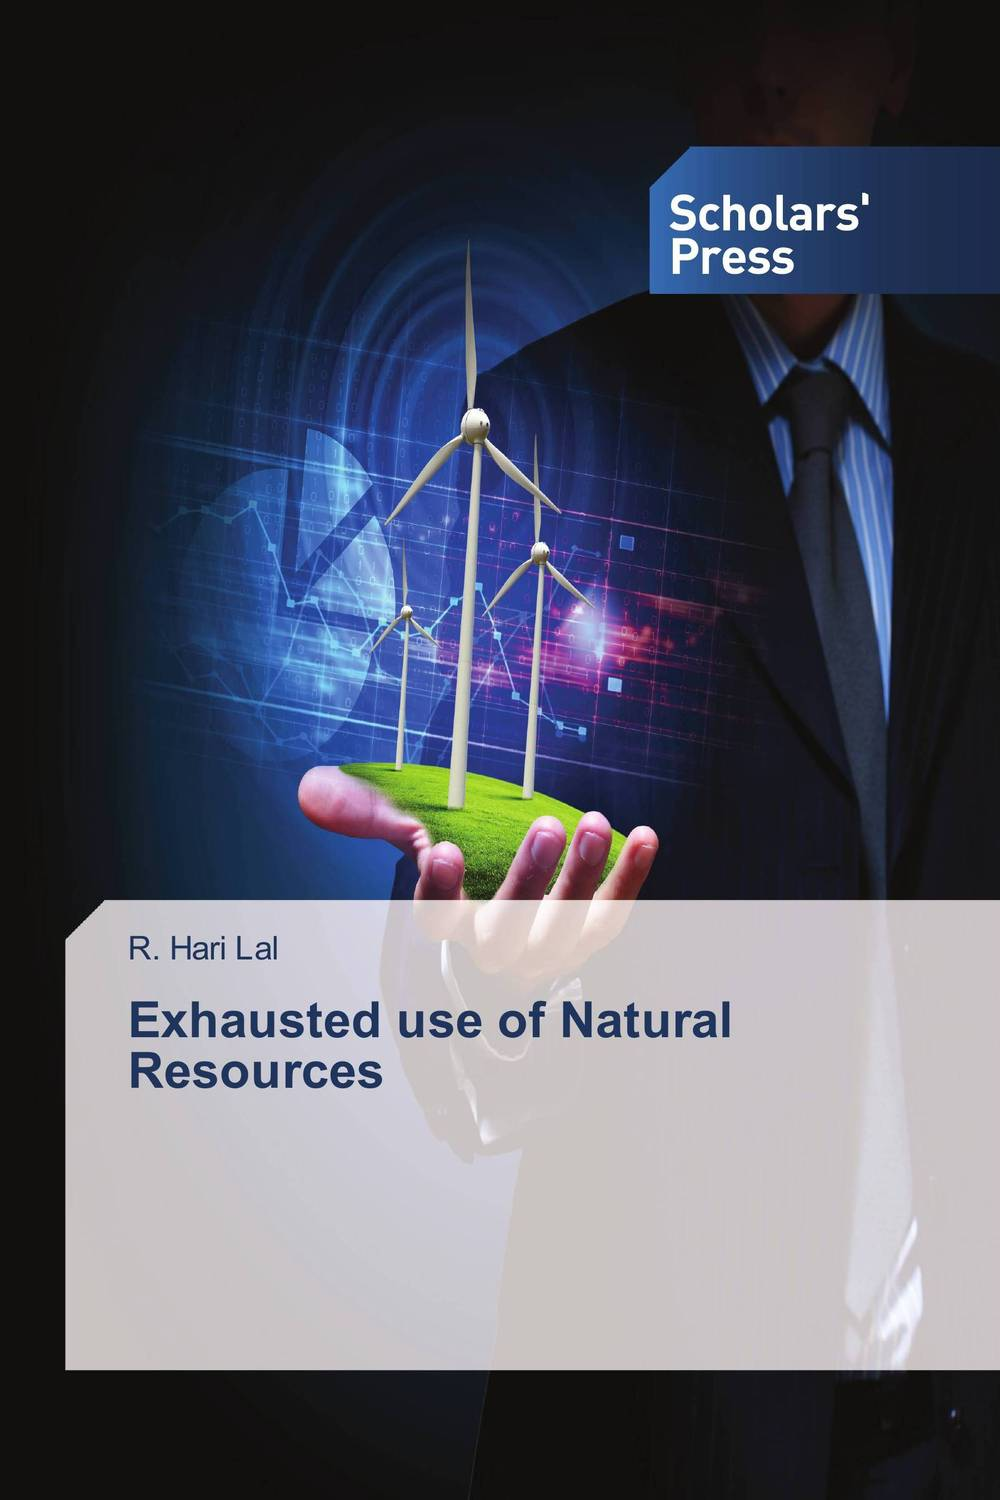 Exhausted use of Natural Resources survival of local knowledge about management of natural resources